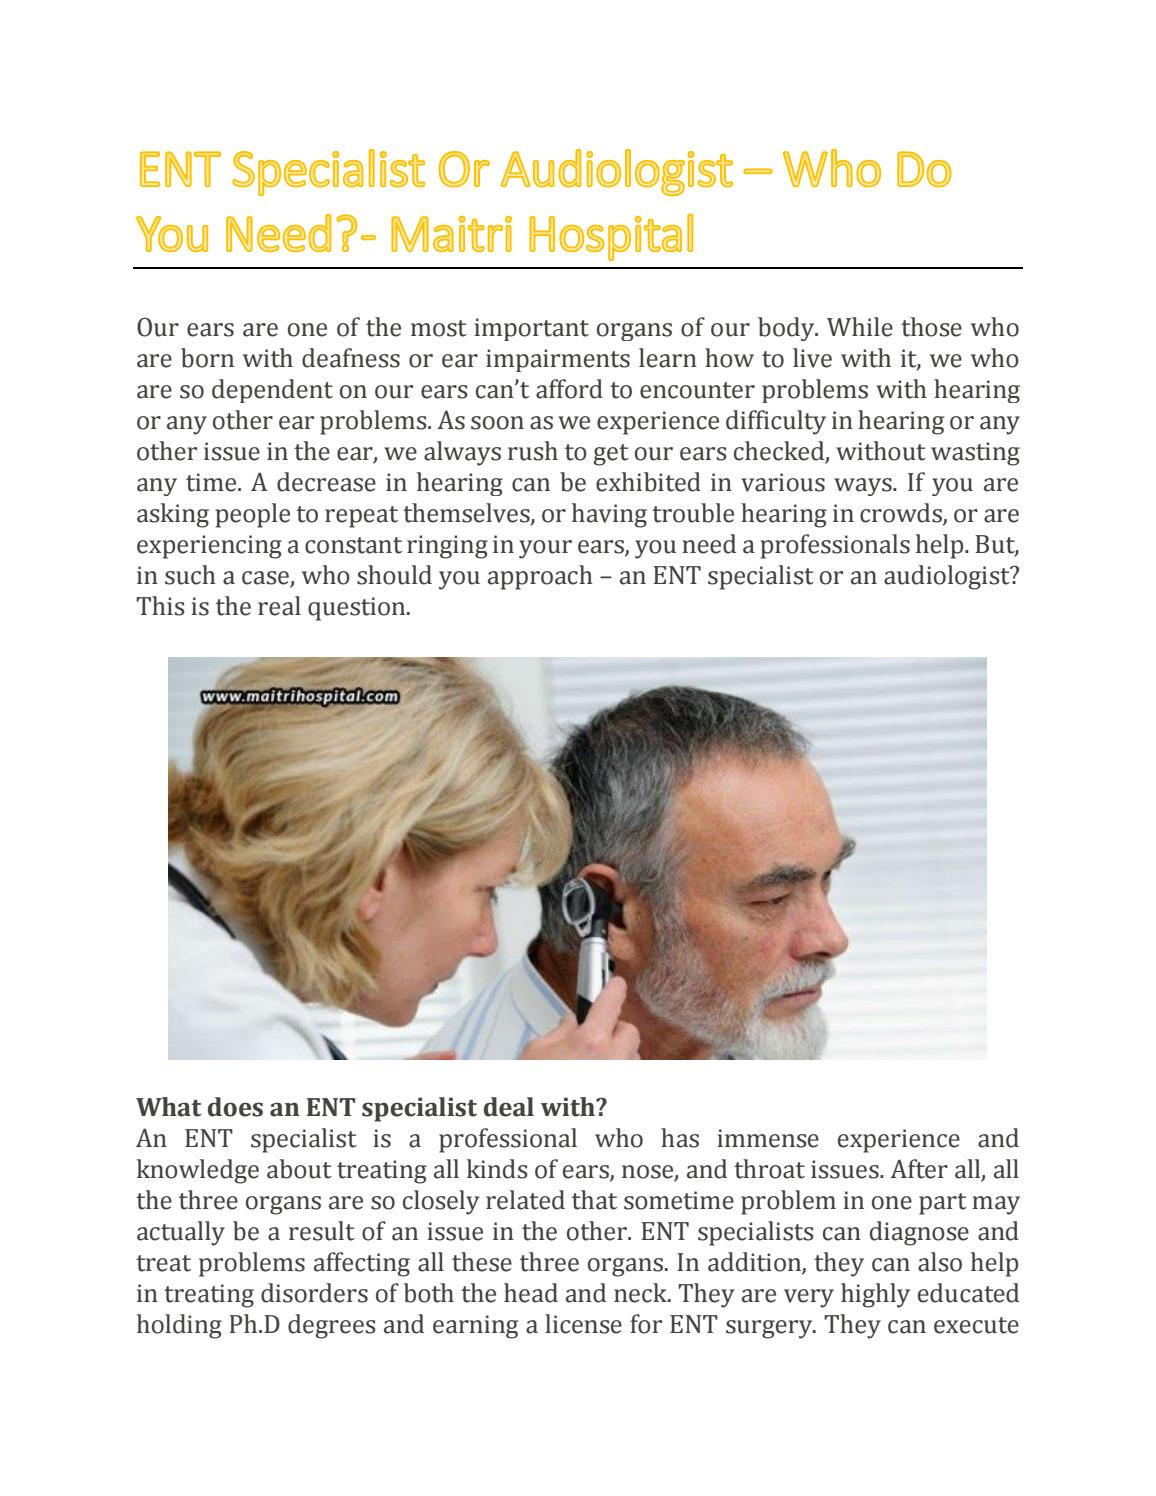 Ent Specialist Or Audiologist Who Do You Need Maitri Hospital By Maitri Hospital Issuu